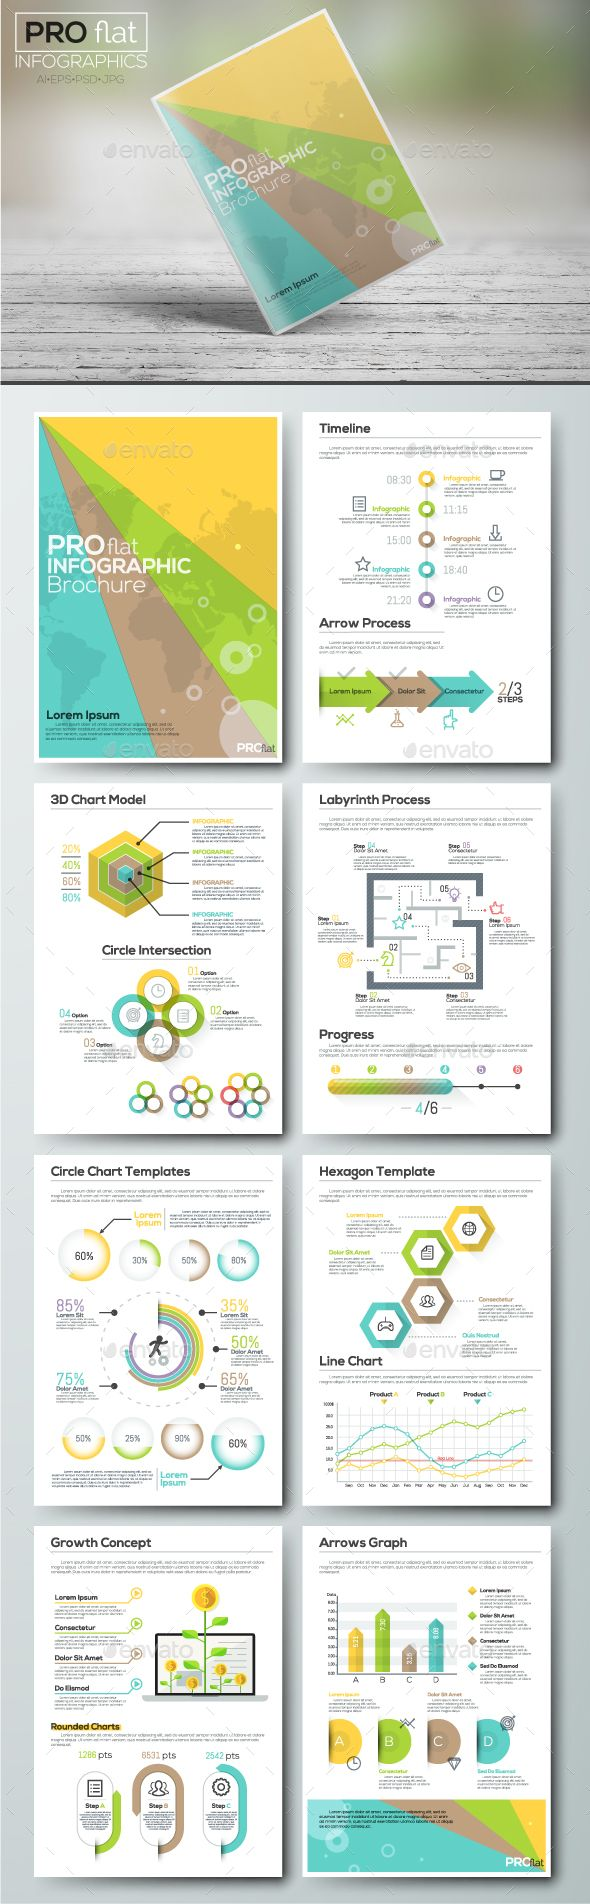 Pro Flat Infographic Brochure Template PSD, Vector EPS, AI Illustrator.  Download Here: